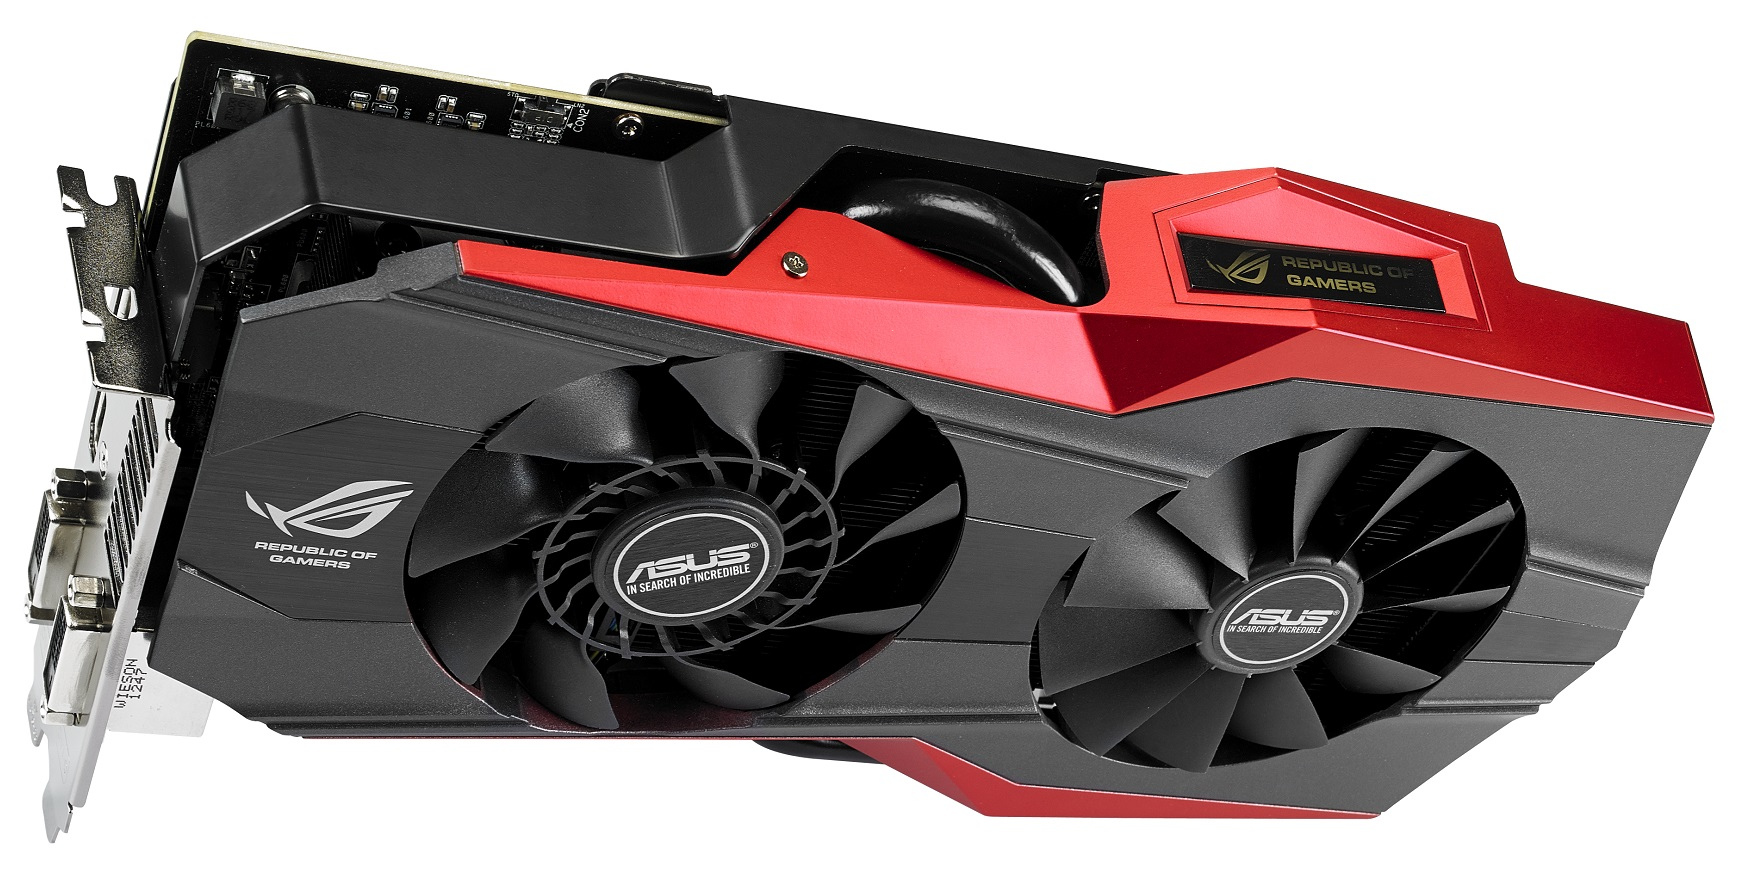 ASUS ROG MATRIX R9 290X Platinum Graphics Card Pictured